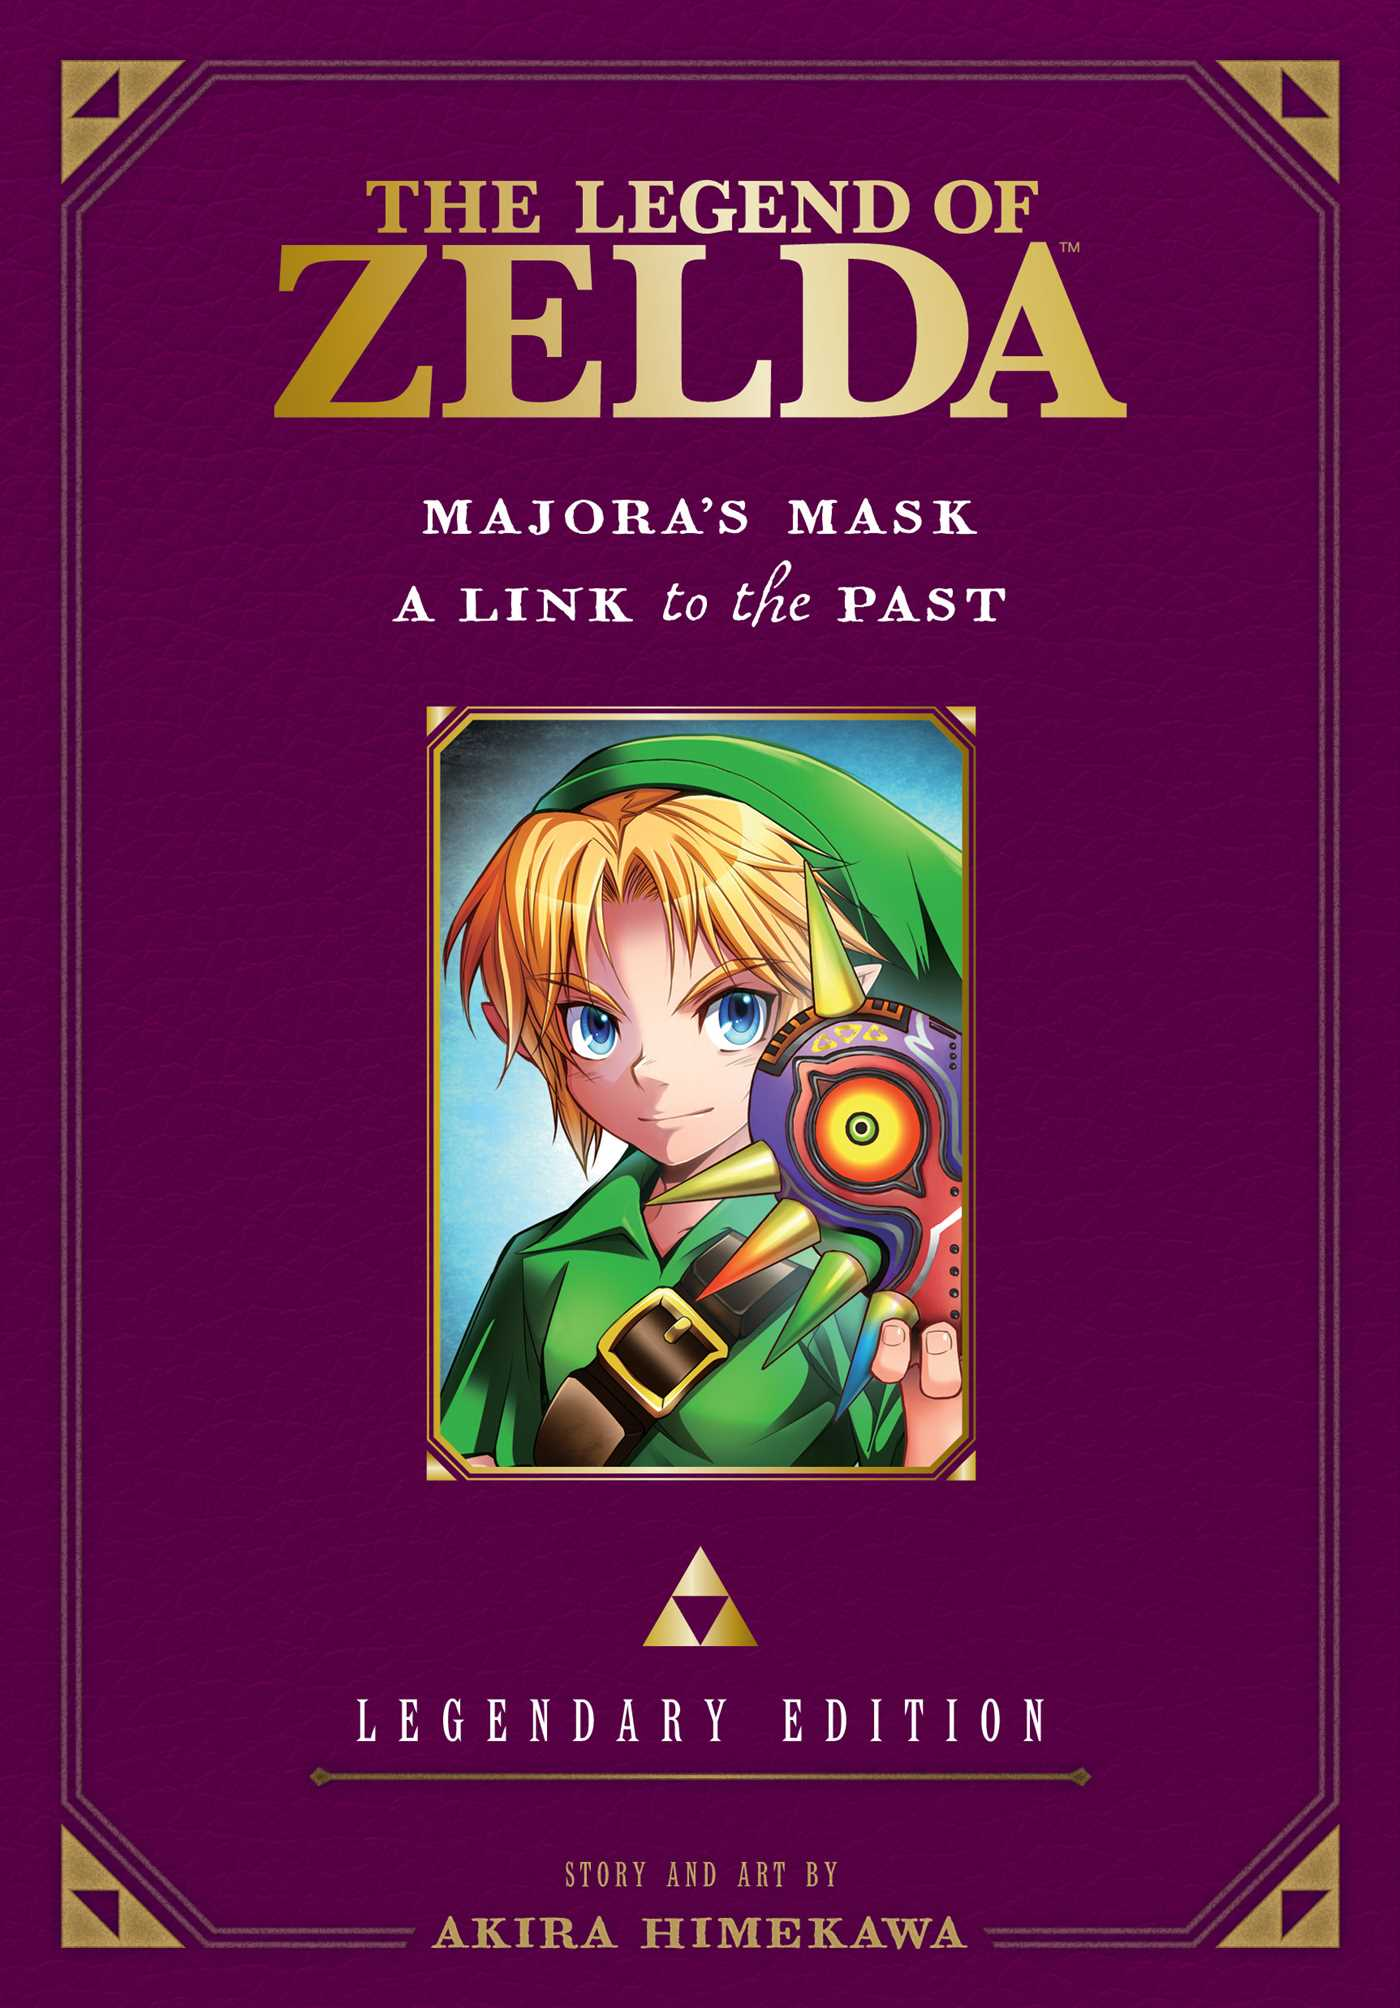 The legend of zelda legendary edition vol 3 9781421589619 hr